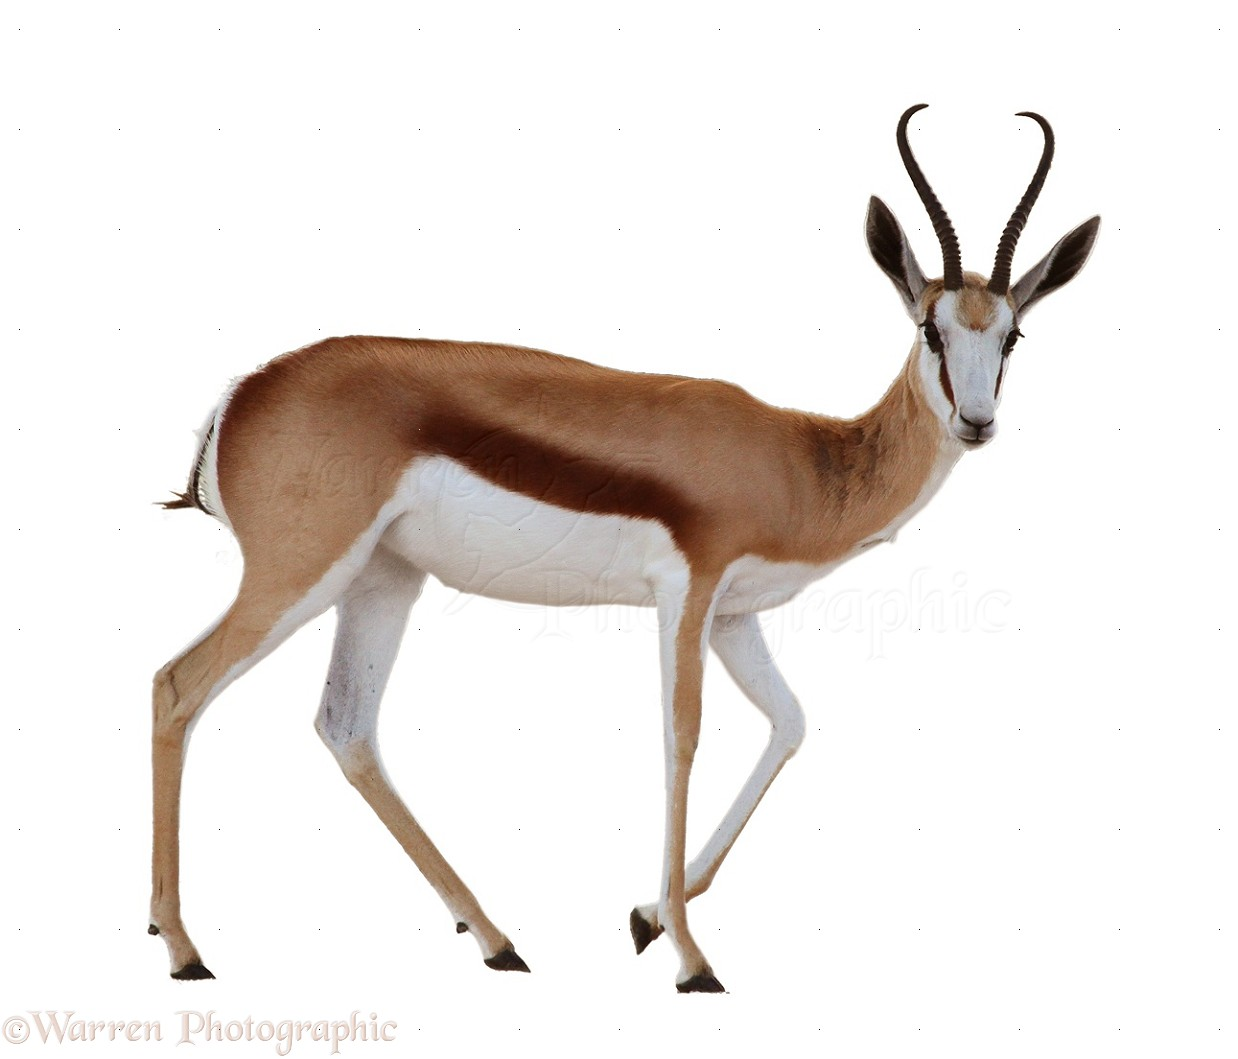 clipart springbok - photo #9